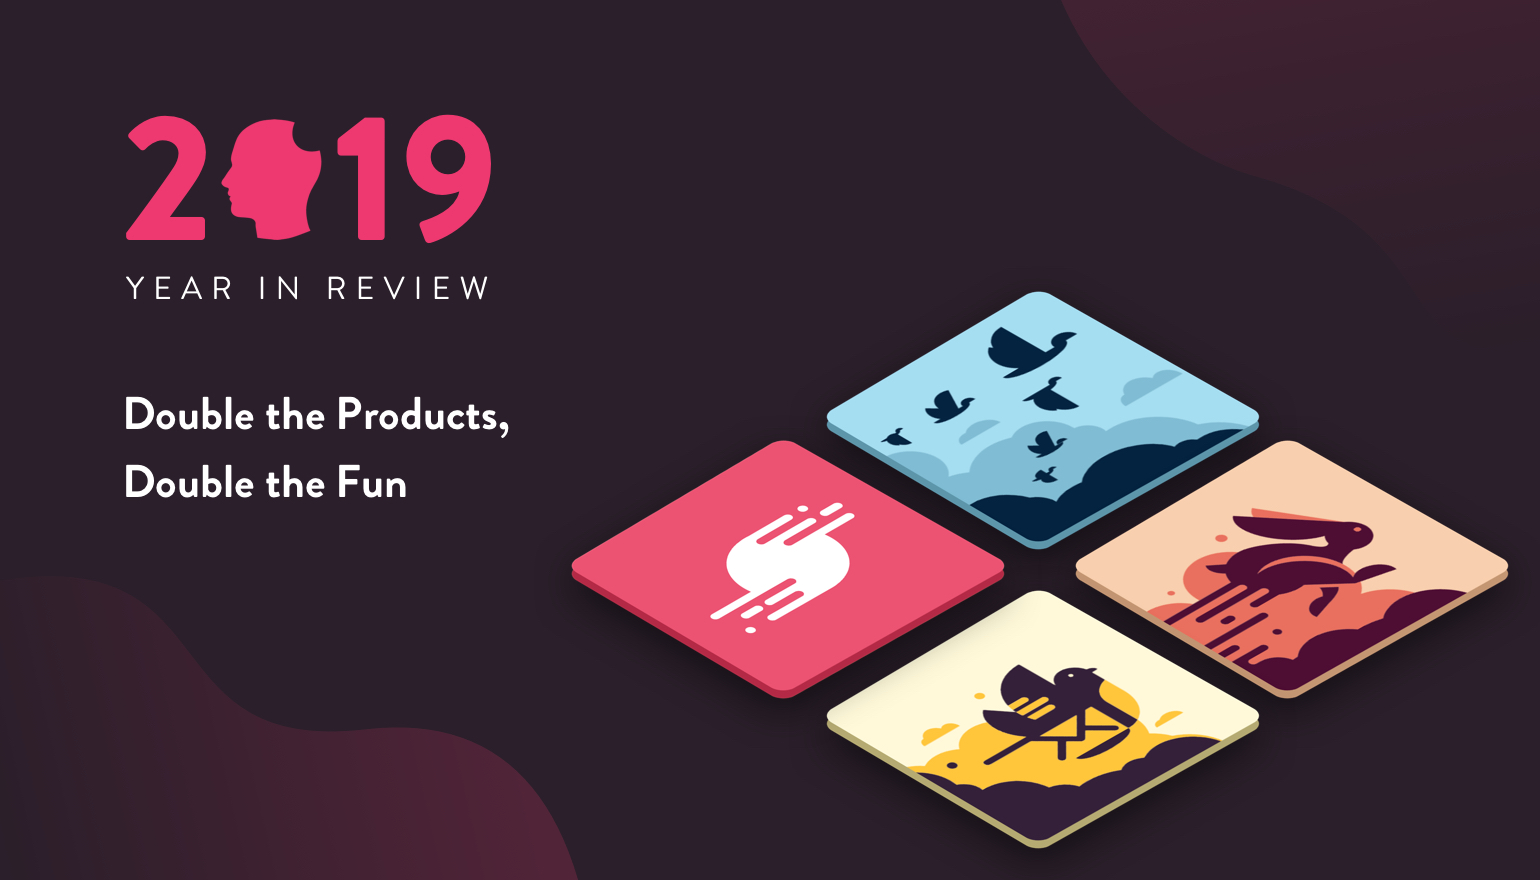 2019 Year in Review - Double the Products, Double the Fun